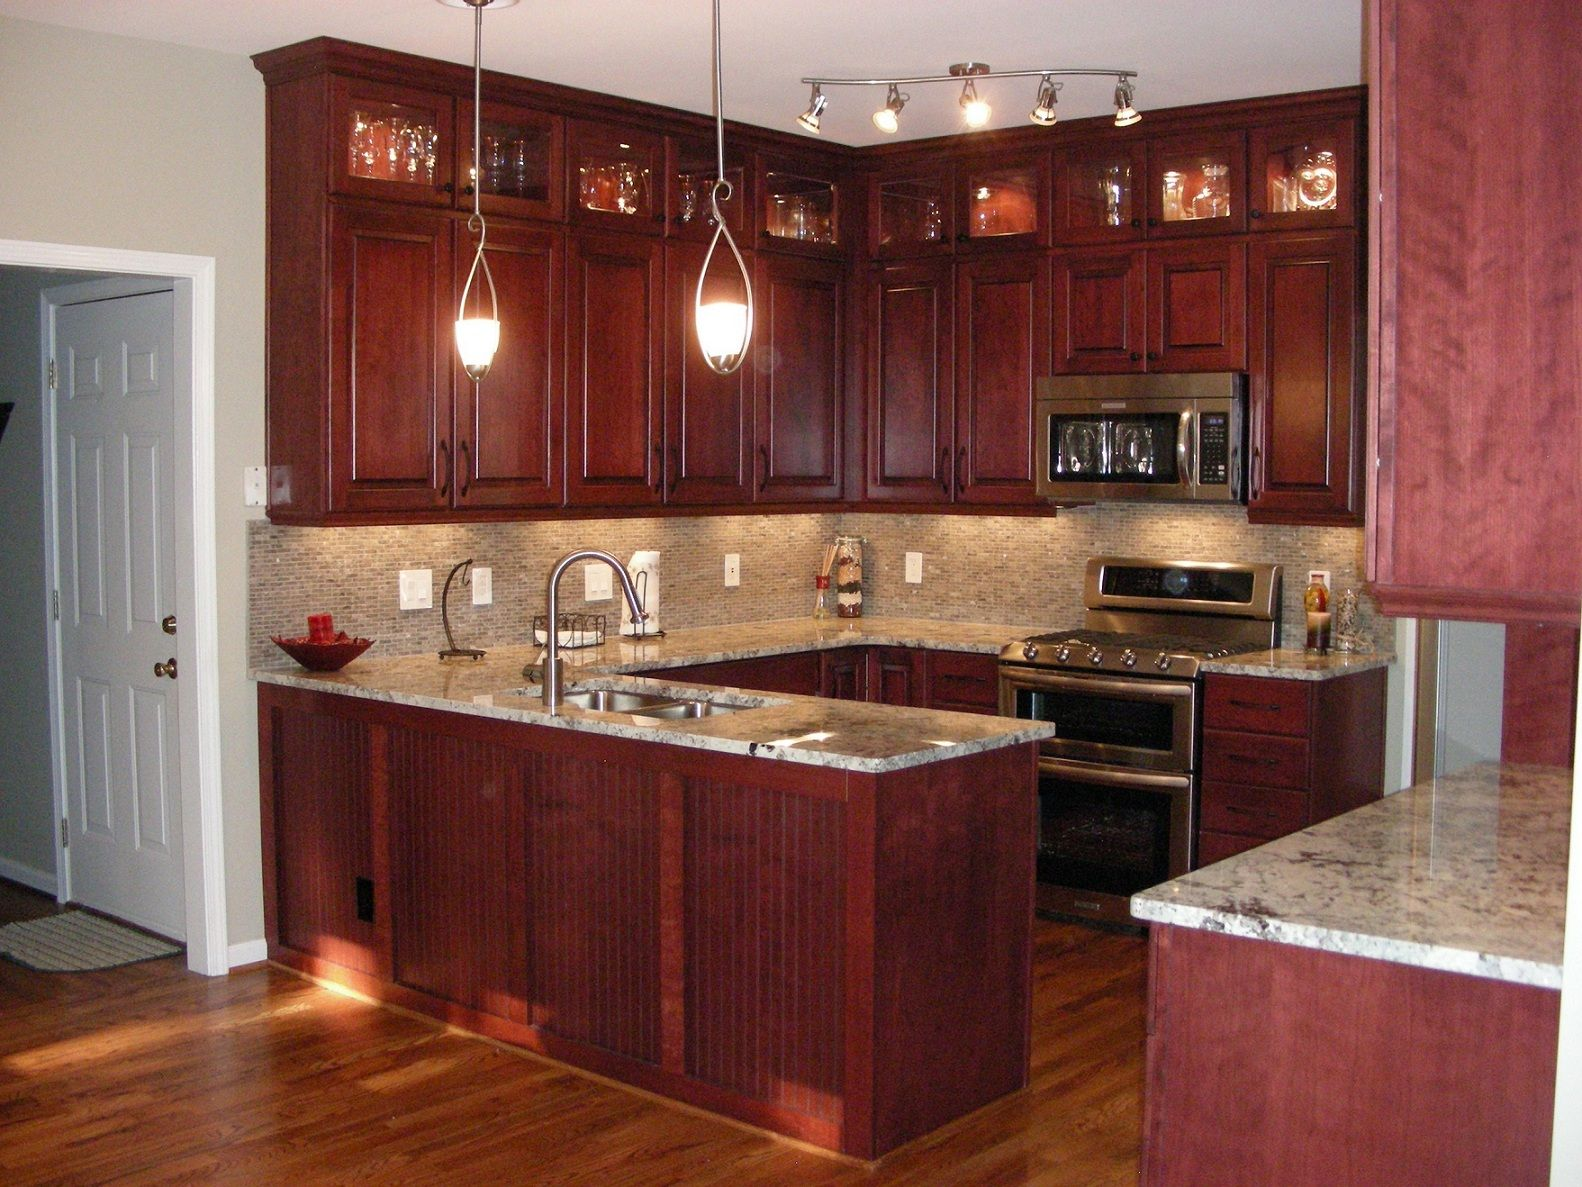 Merveilleux Cherry Kitchen Cabinets In A Thoughtful Design Work Hard To Make This House  A Home